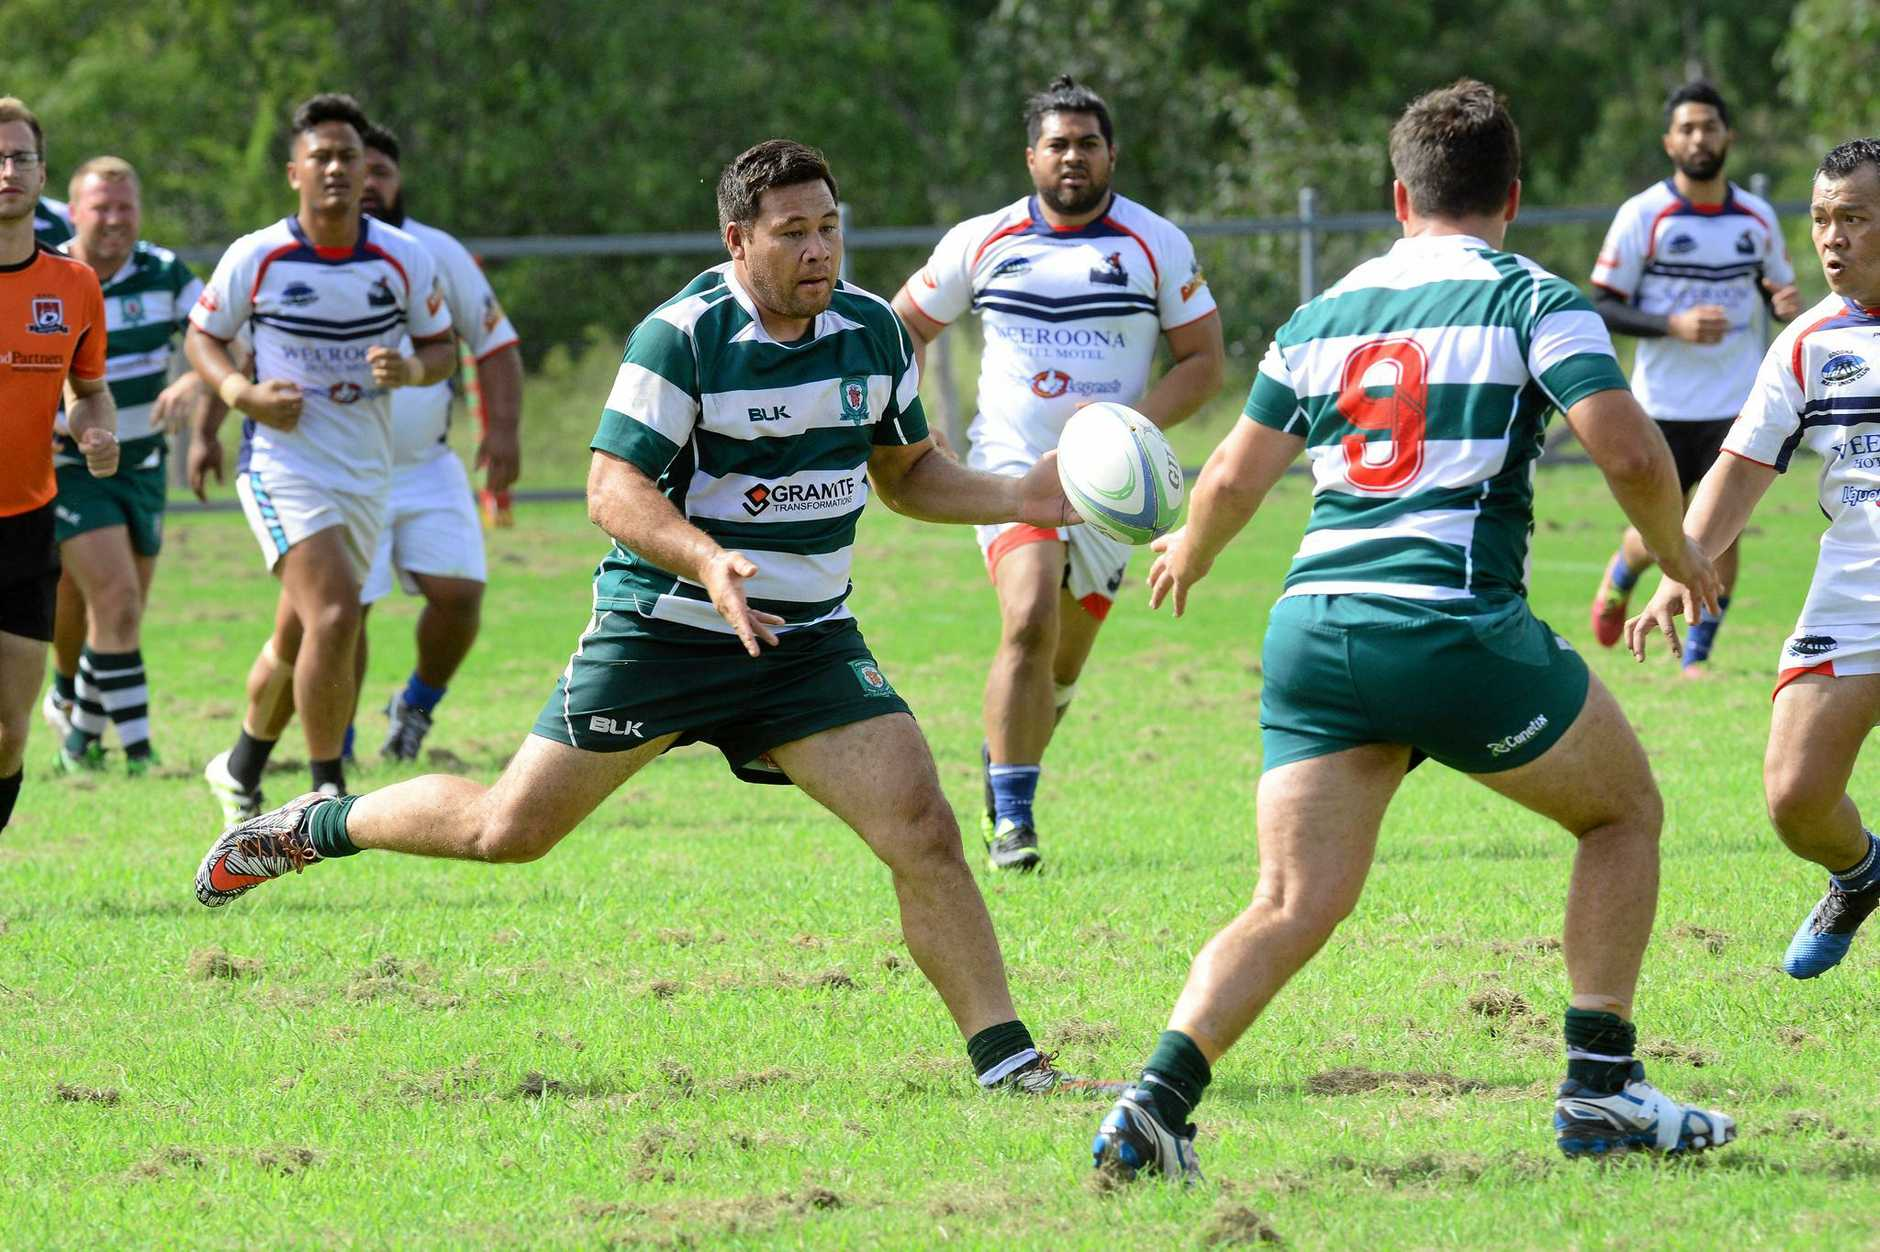 TOP TEN: The Ipswich Rangers and Goodna combined to host and win the QSRU Rugby 10s.